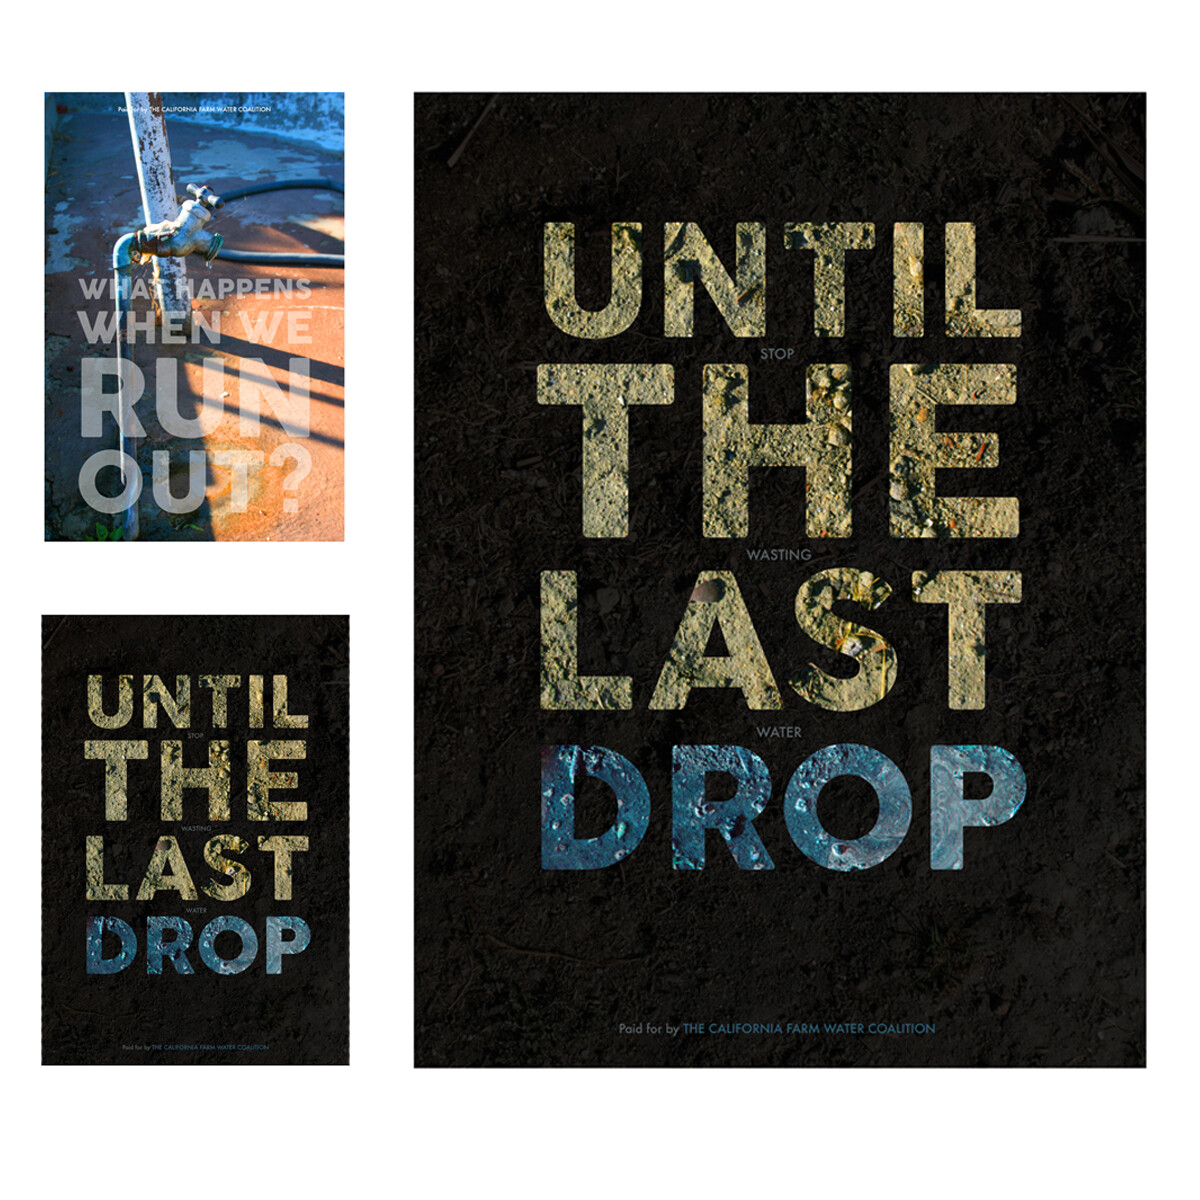 Until The Last Drop - Drought Poster